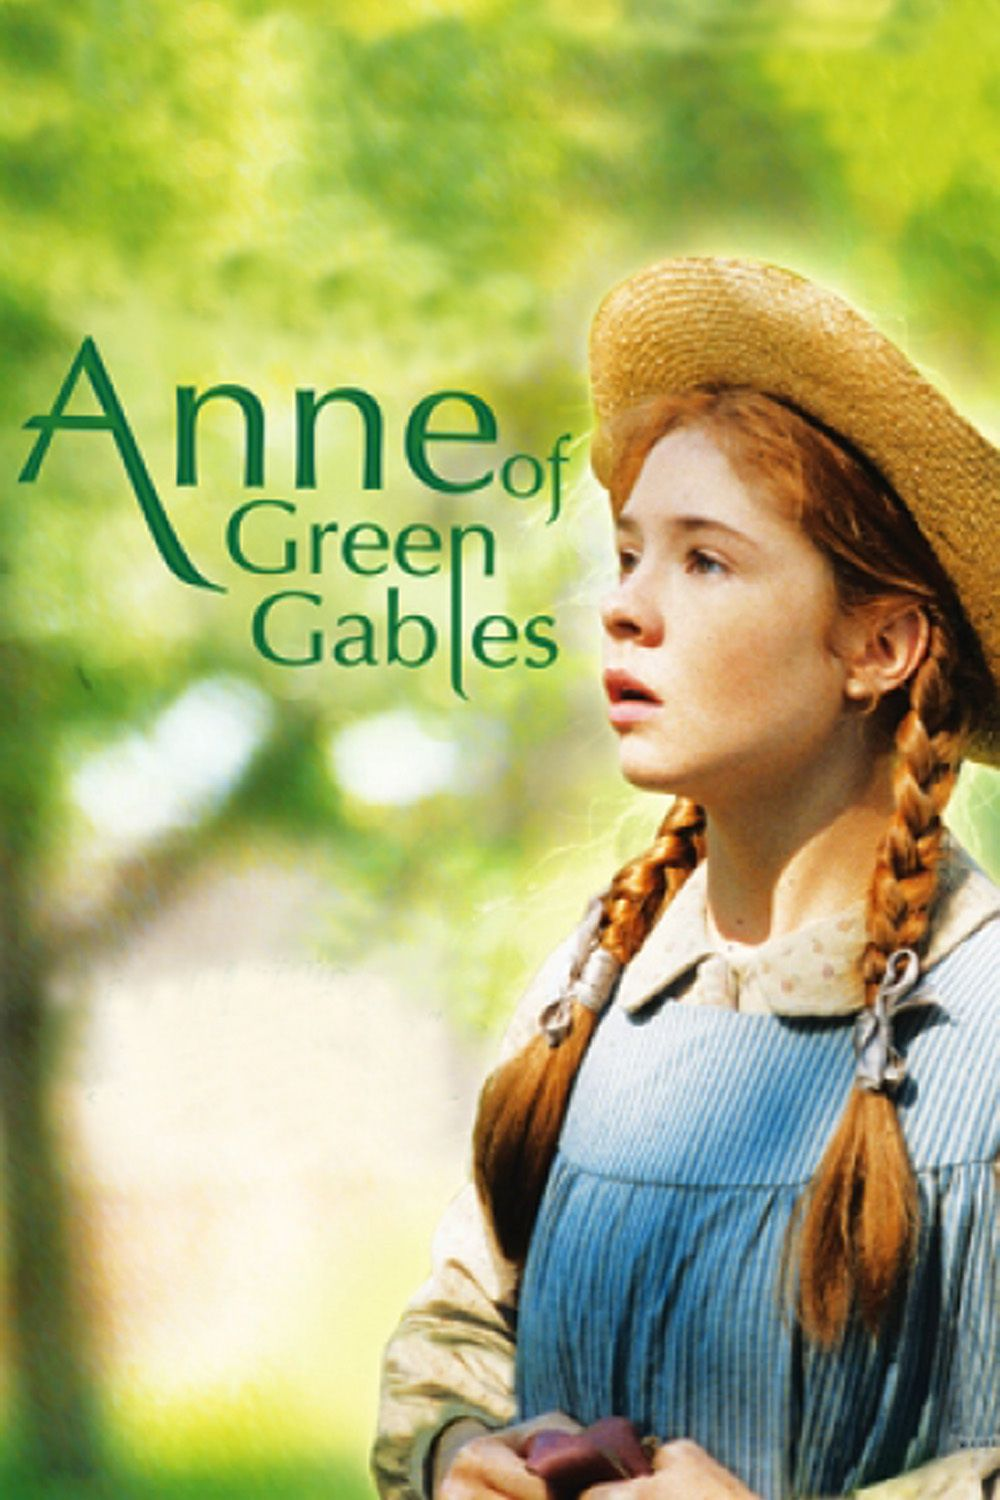 Anne Of Green Gables 2016 Hollywood Hd Movie Watch Free With